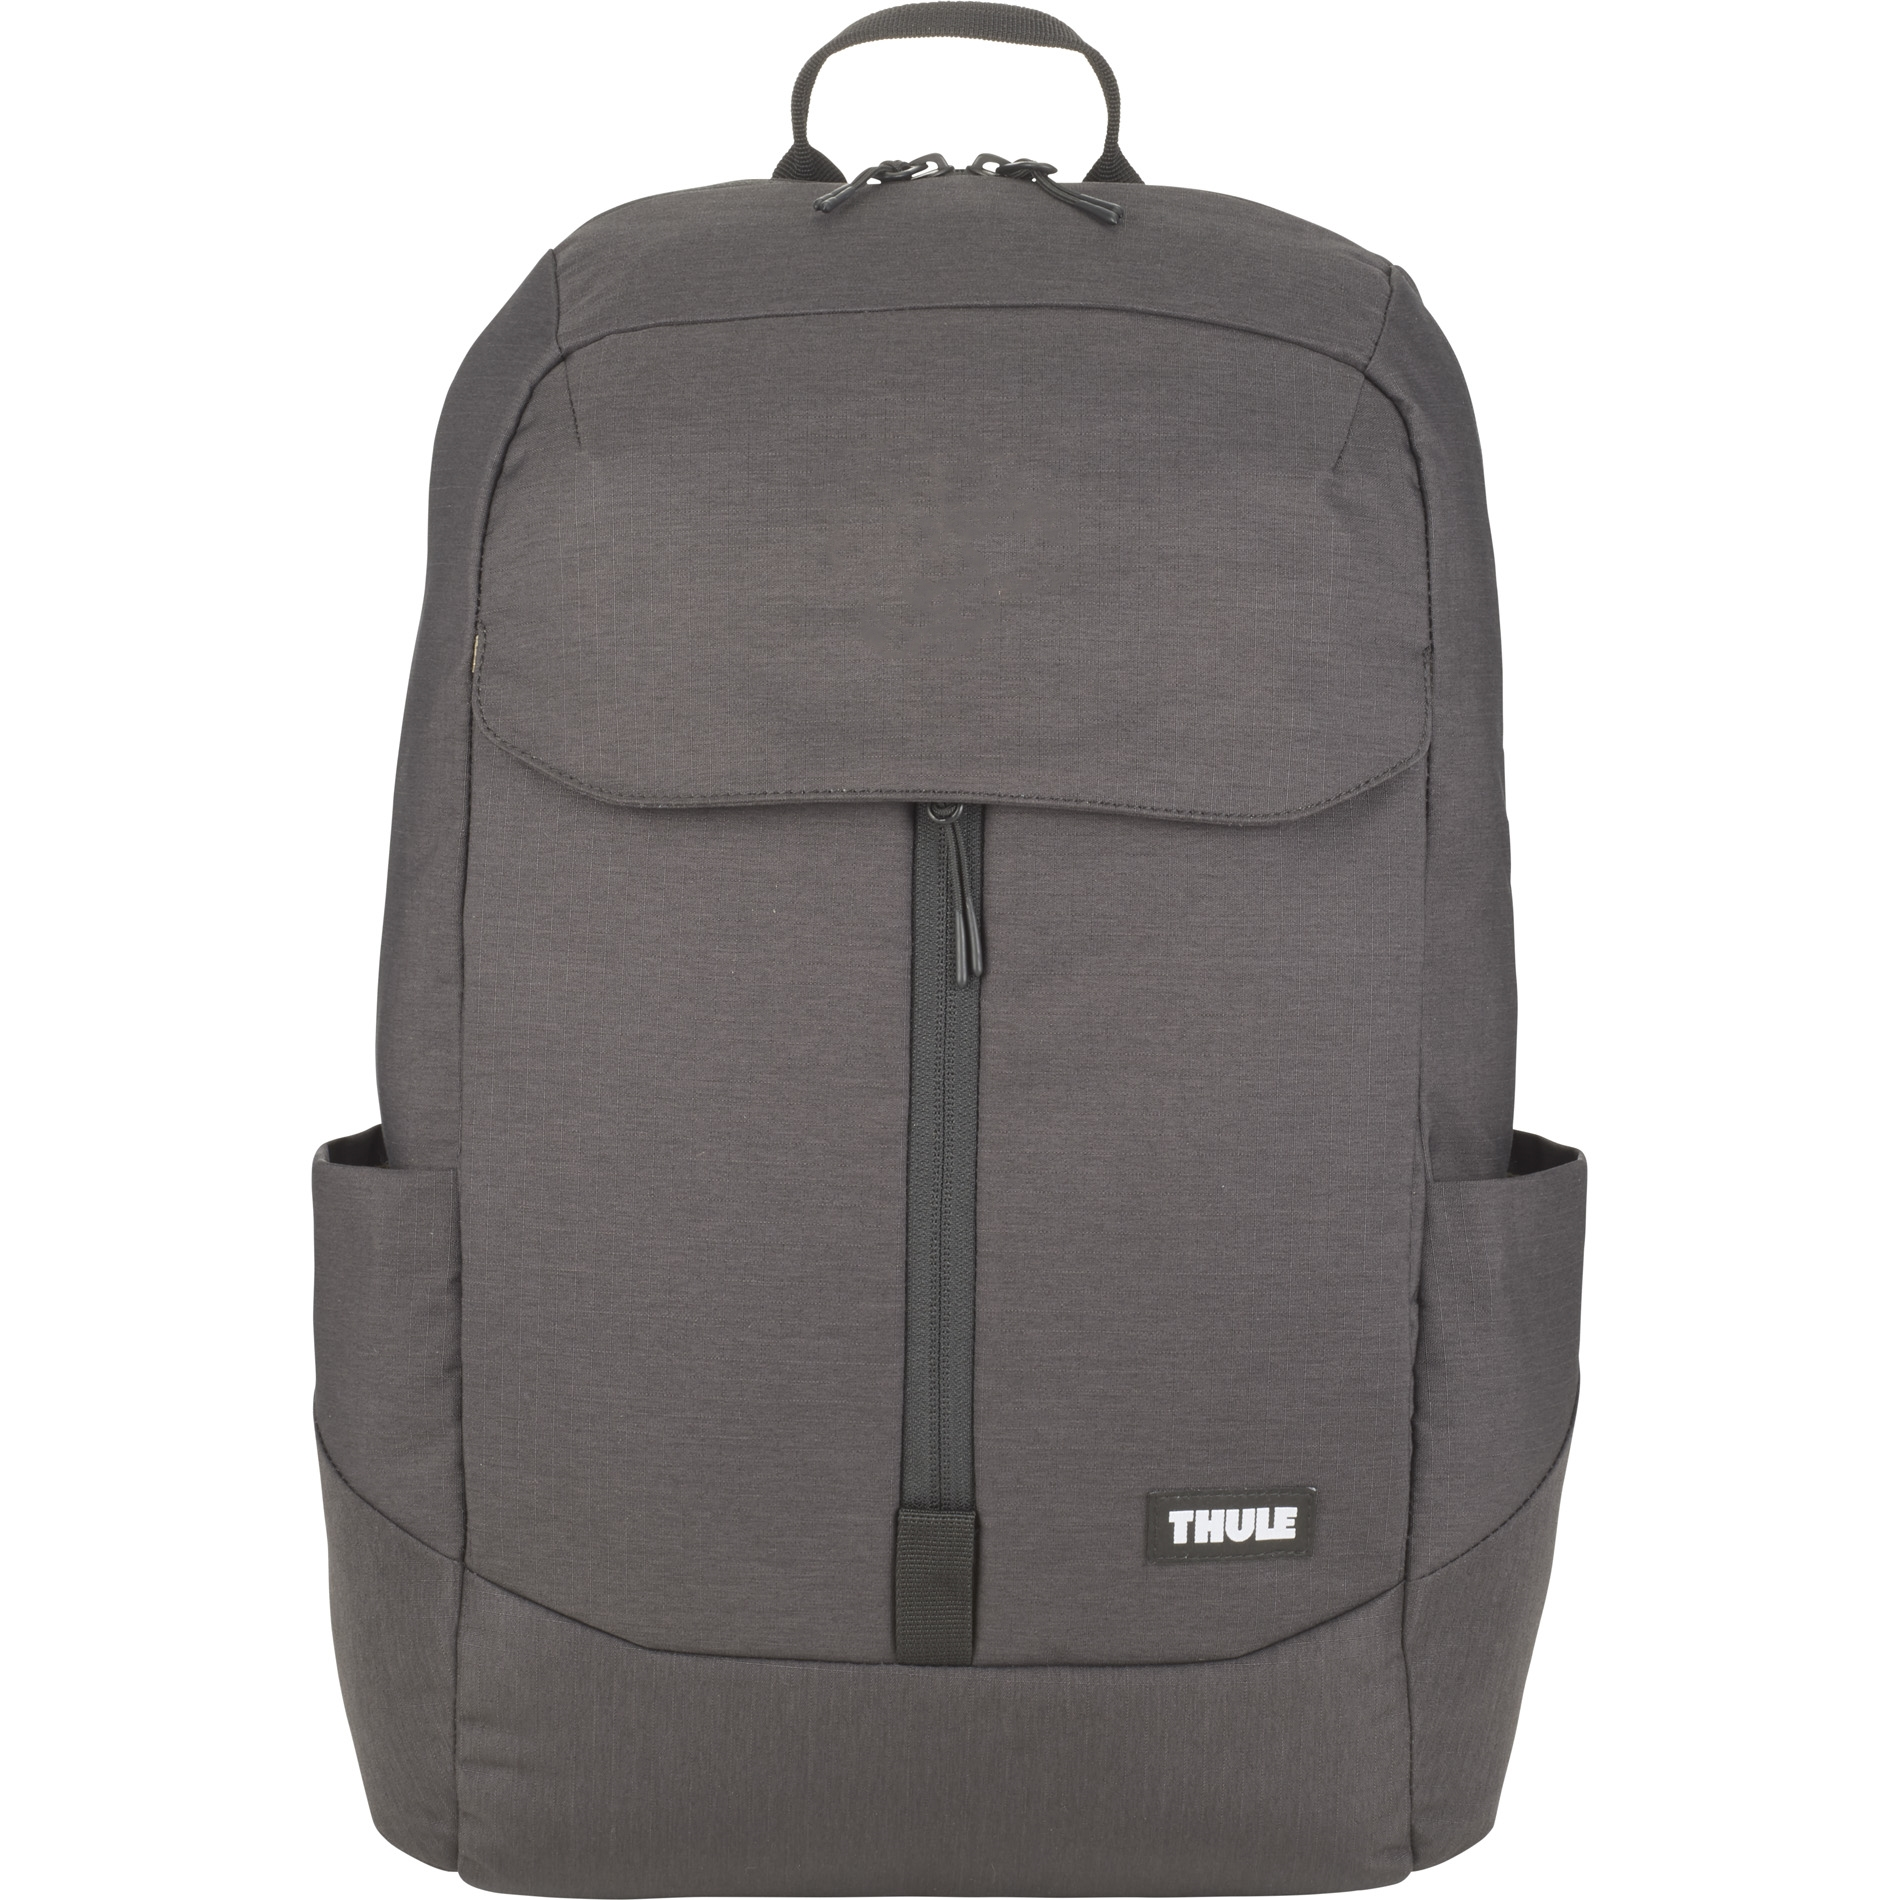 "Thule 9020-22 - Lithos 15"" Computer Backpack (20L)"